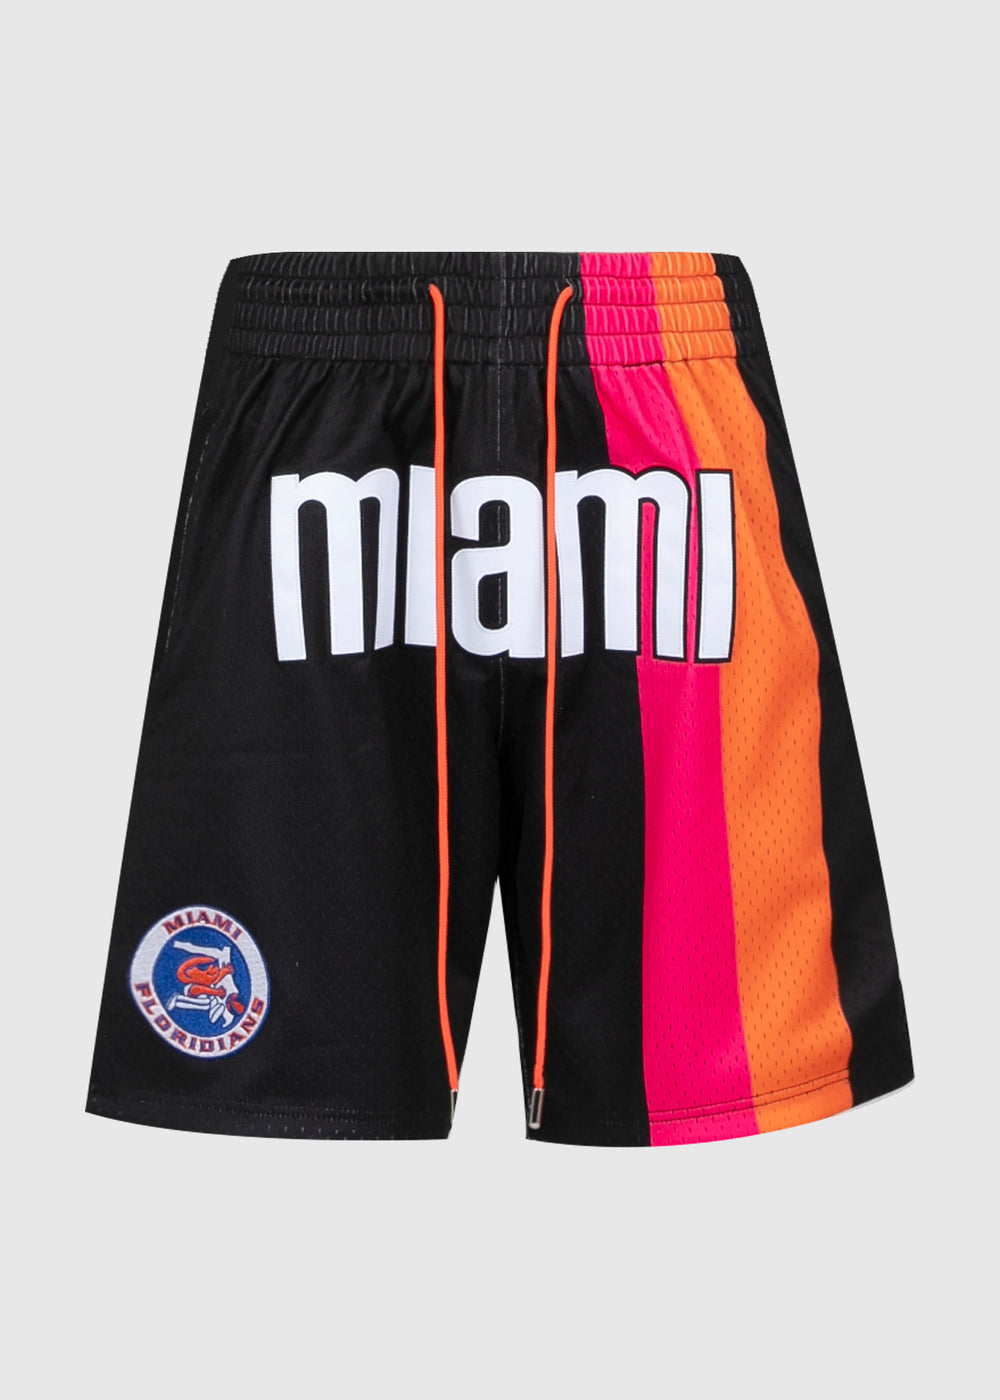 just-don-miami-short-1